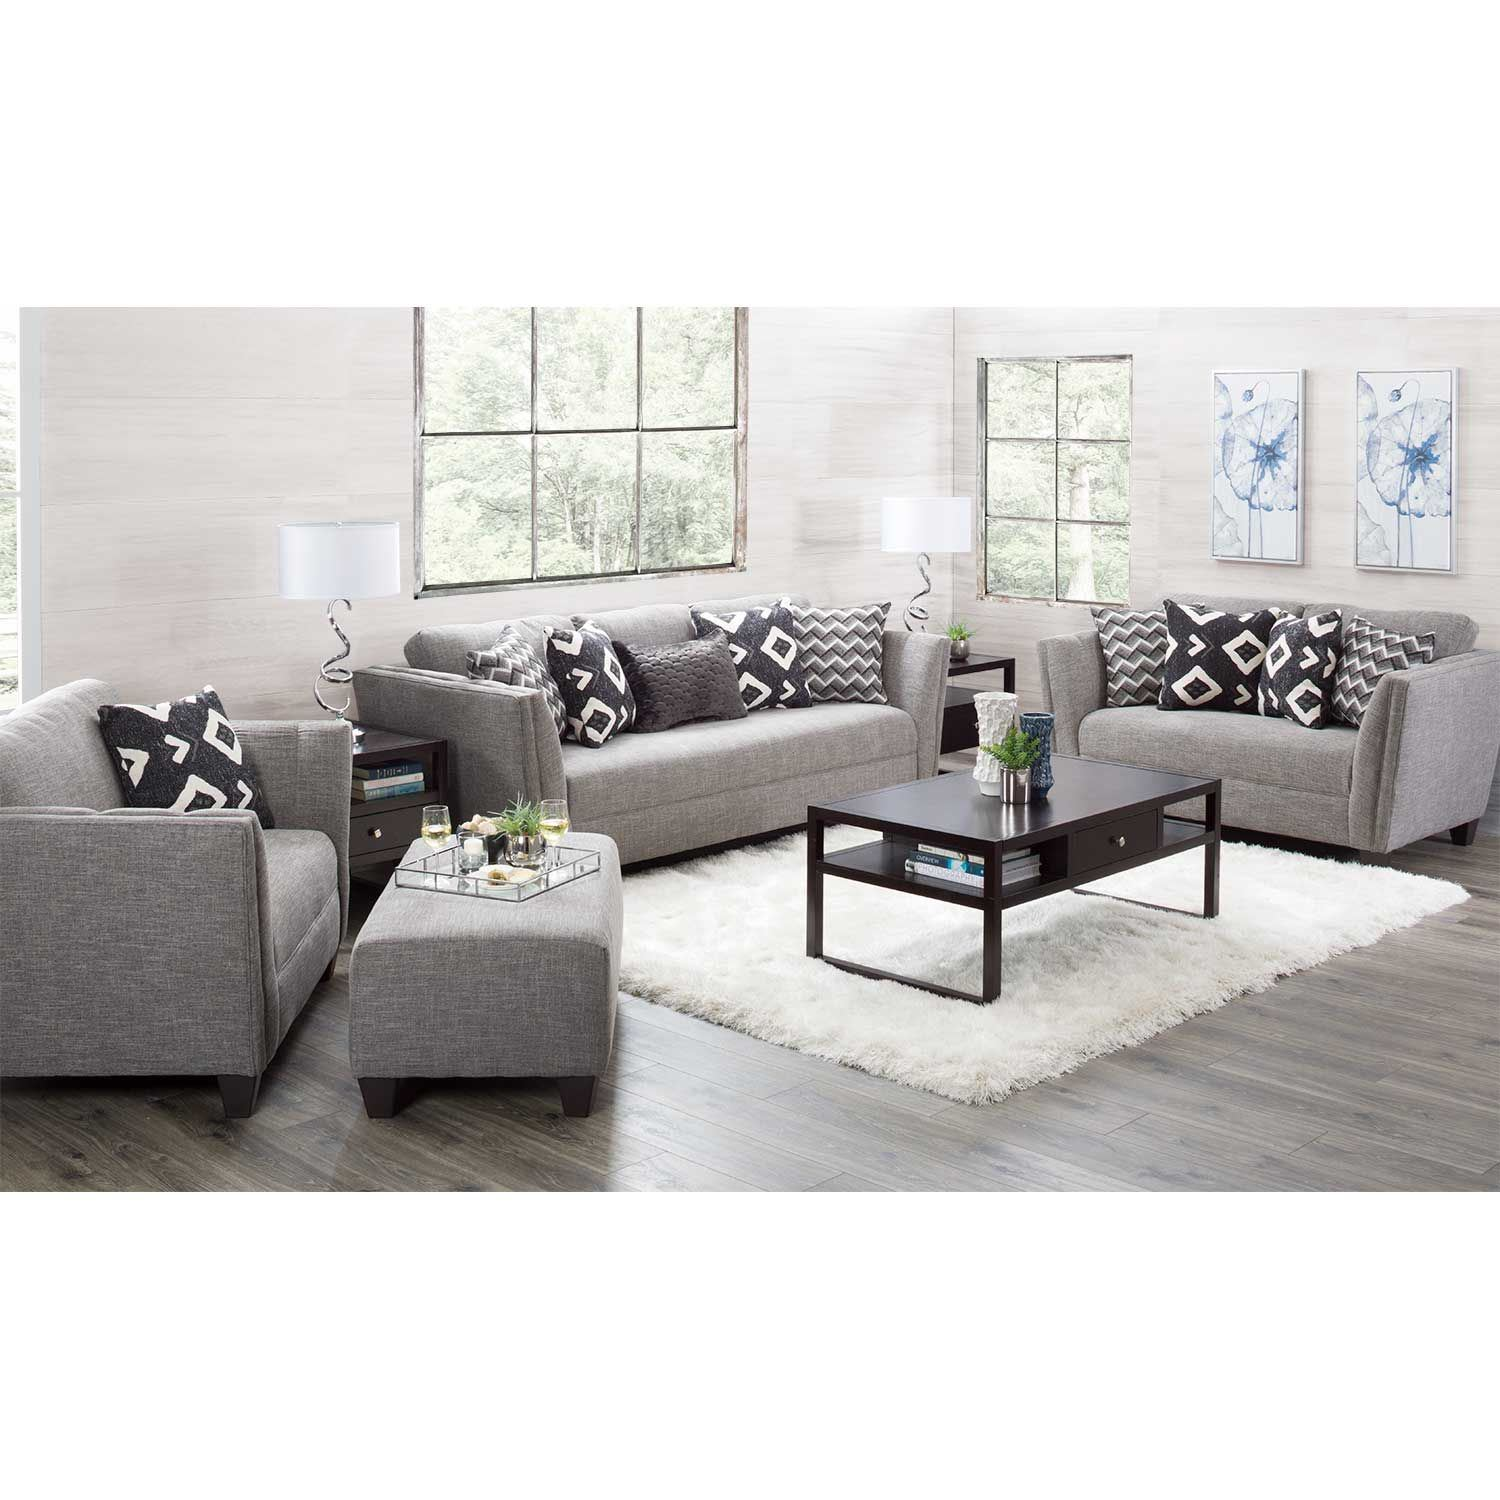 Picture of Amelia Loveseat